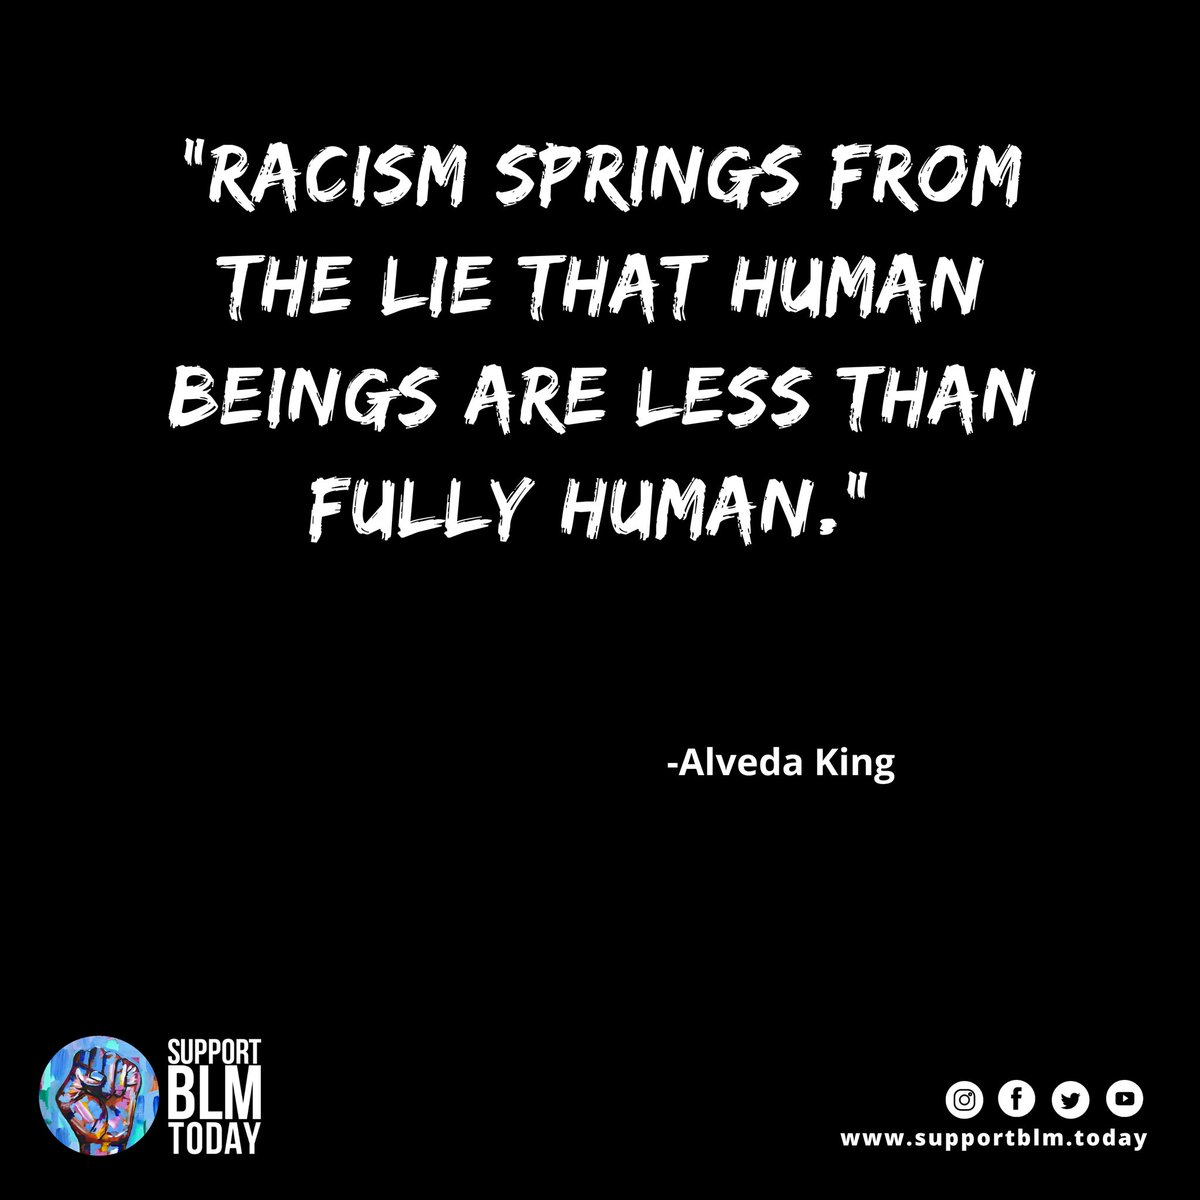 Racism springs from the lie that human beings are less than fully human    #blacklivesmatter #blmquotes #blm #blm2021 #equality #racism #solidarity #blacklives #mlk #blmmovement #nojusticenopeace #blacklivesmatterplaza #blmprotest #blmfist